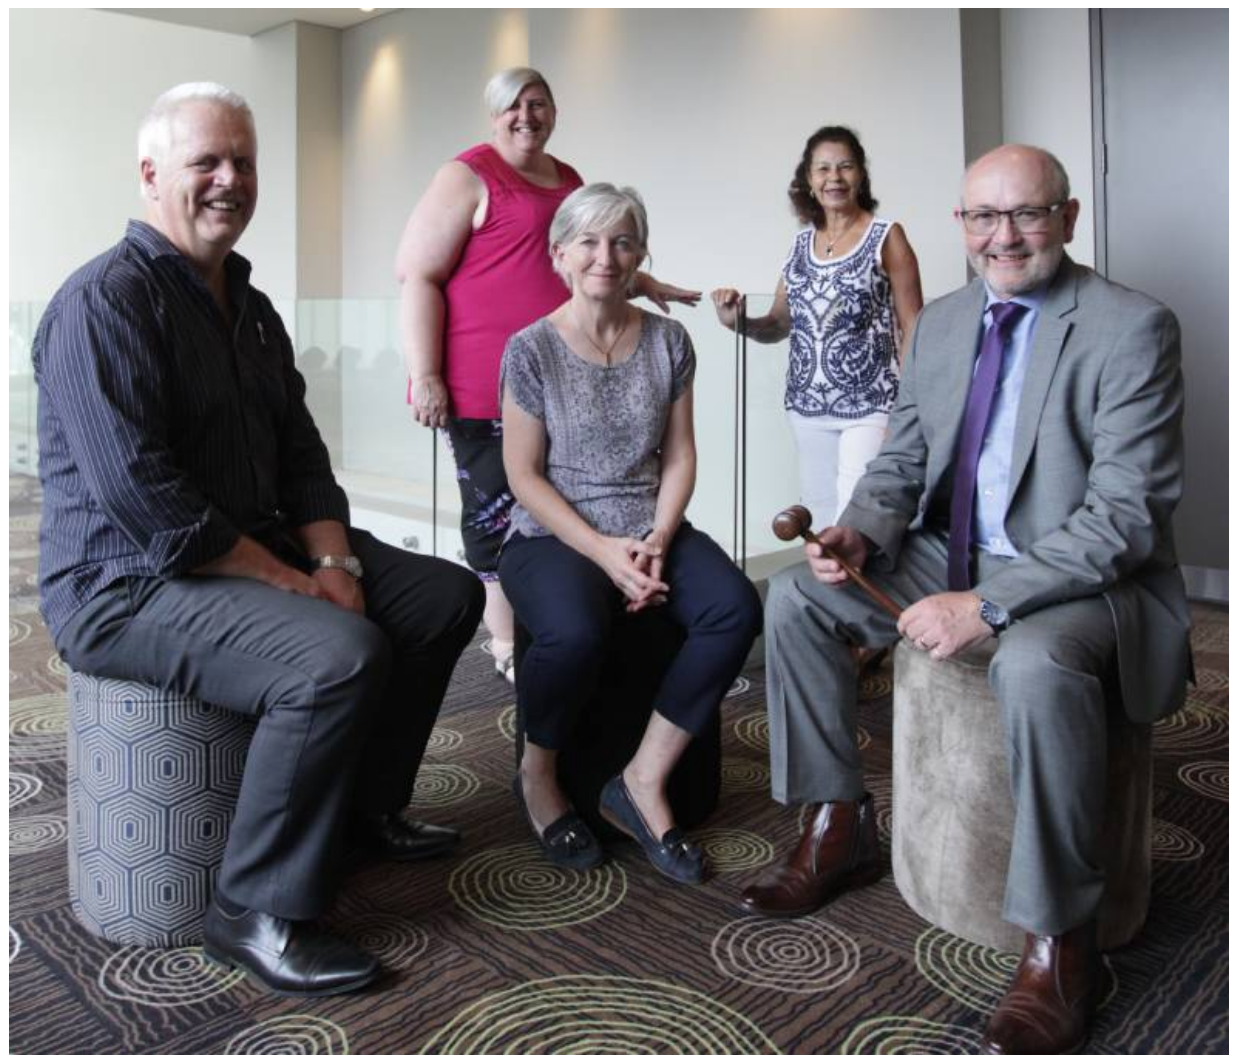 SIGNIFICANT MILESTONE: Campbelltown Toastmasters members Wayne Hooper, Christine Best, Zoe Norris, Danielle Halliwell and Bob Norris are prepared to celebrate the club's 1000th meeting.